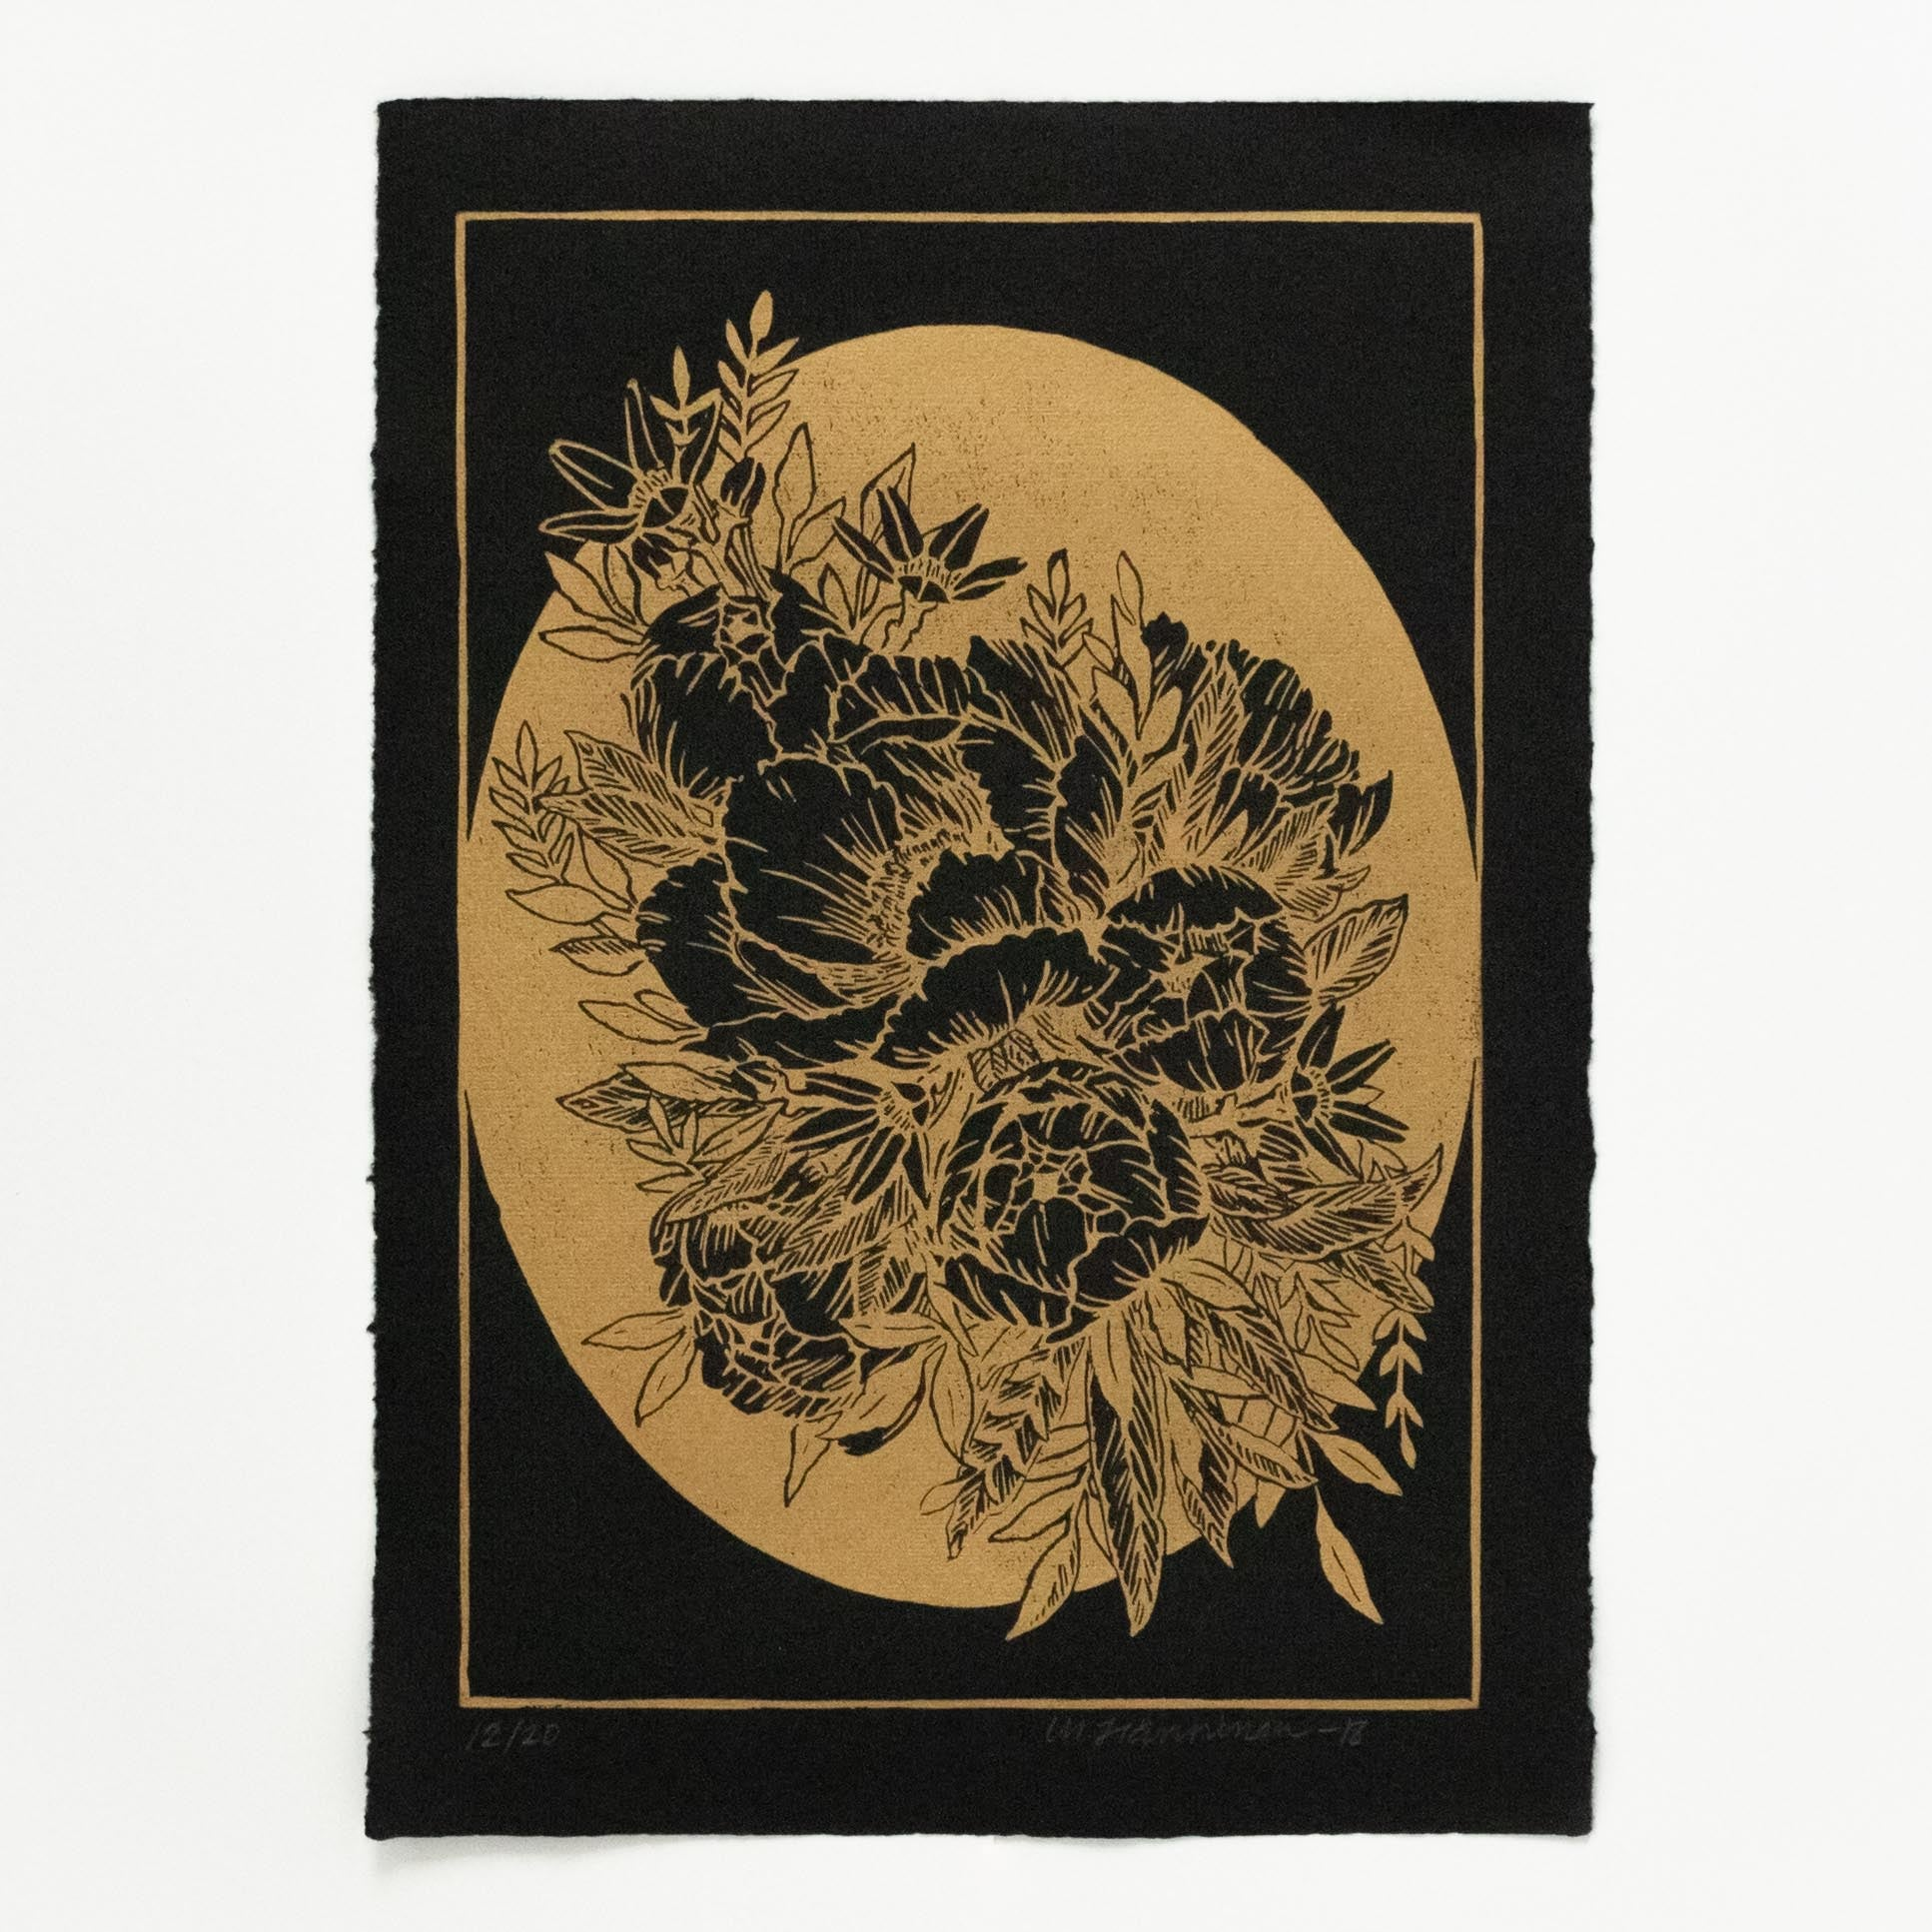 A floral linocut print of bucket of peonies and oval shaped background, printed with gold ink on black A4 paper.